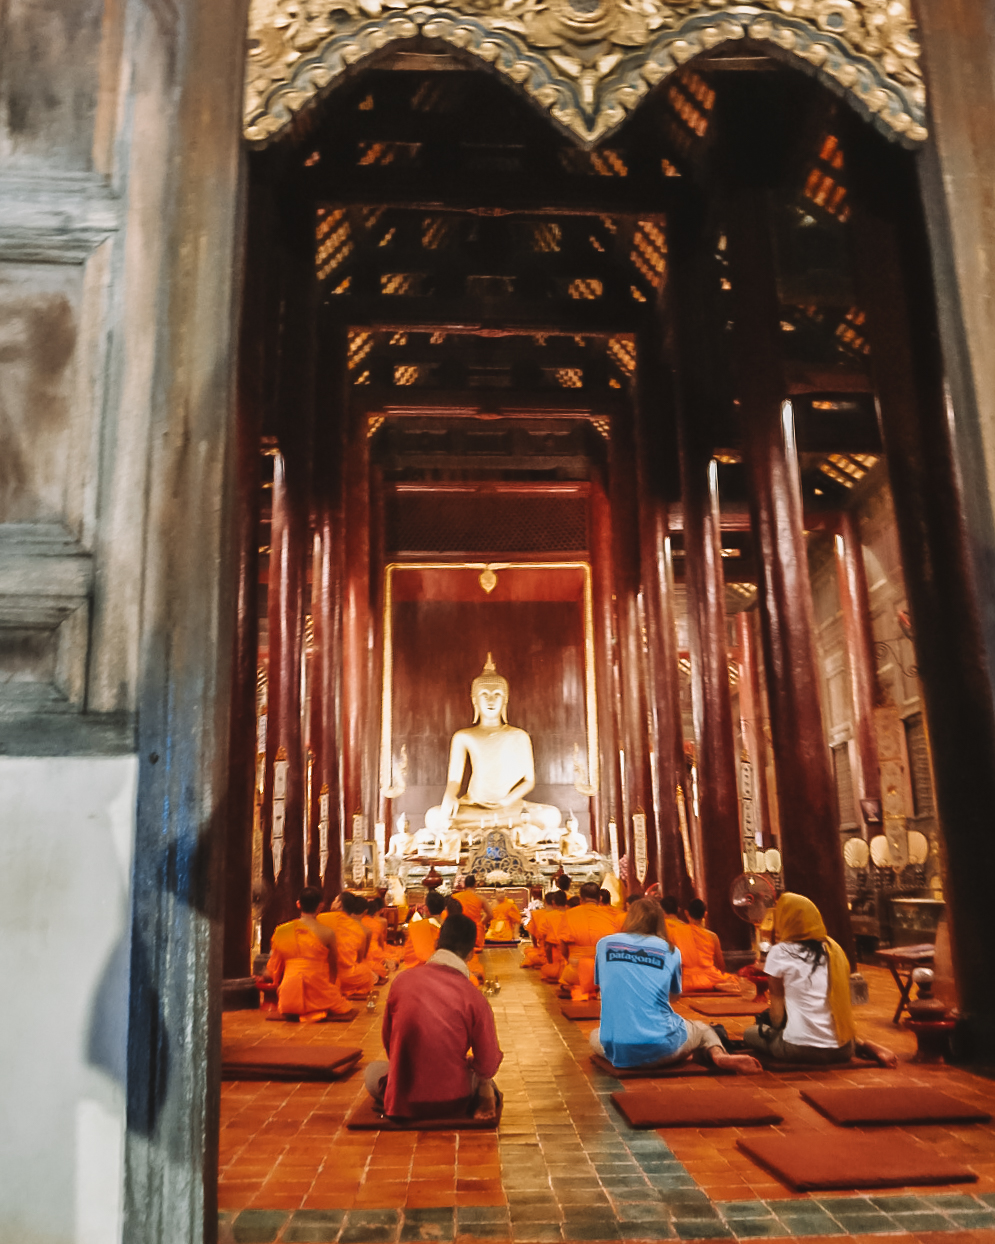 monks praying in a temple in  chiang mai thailand